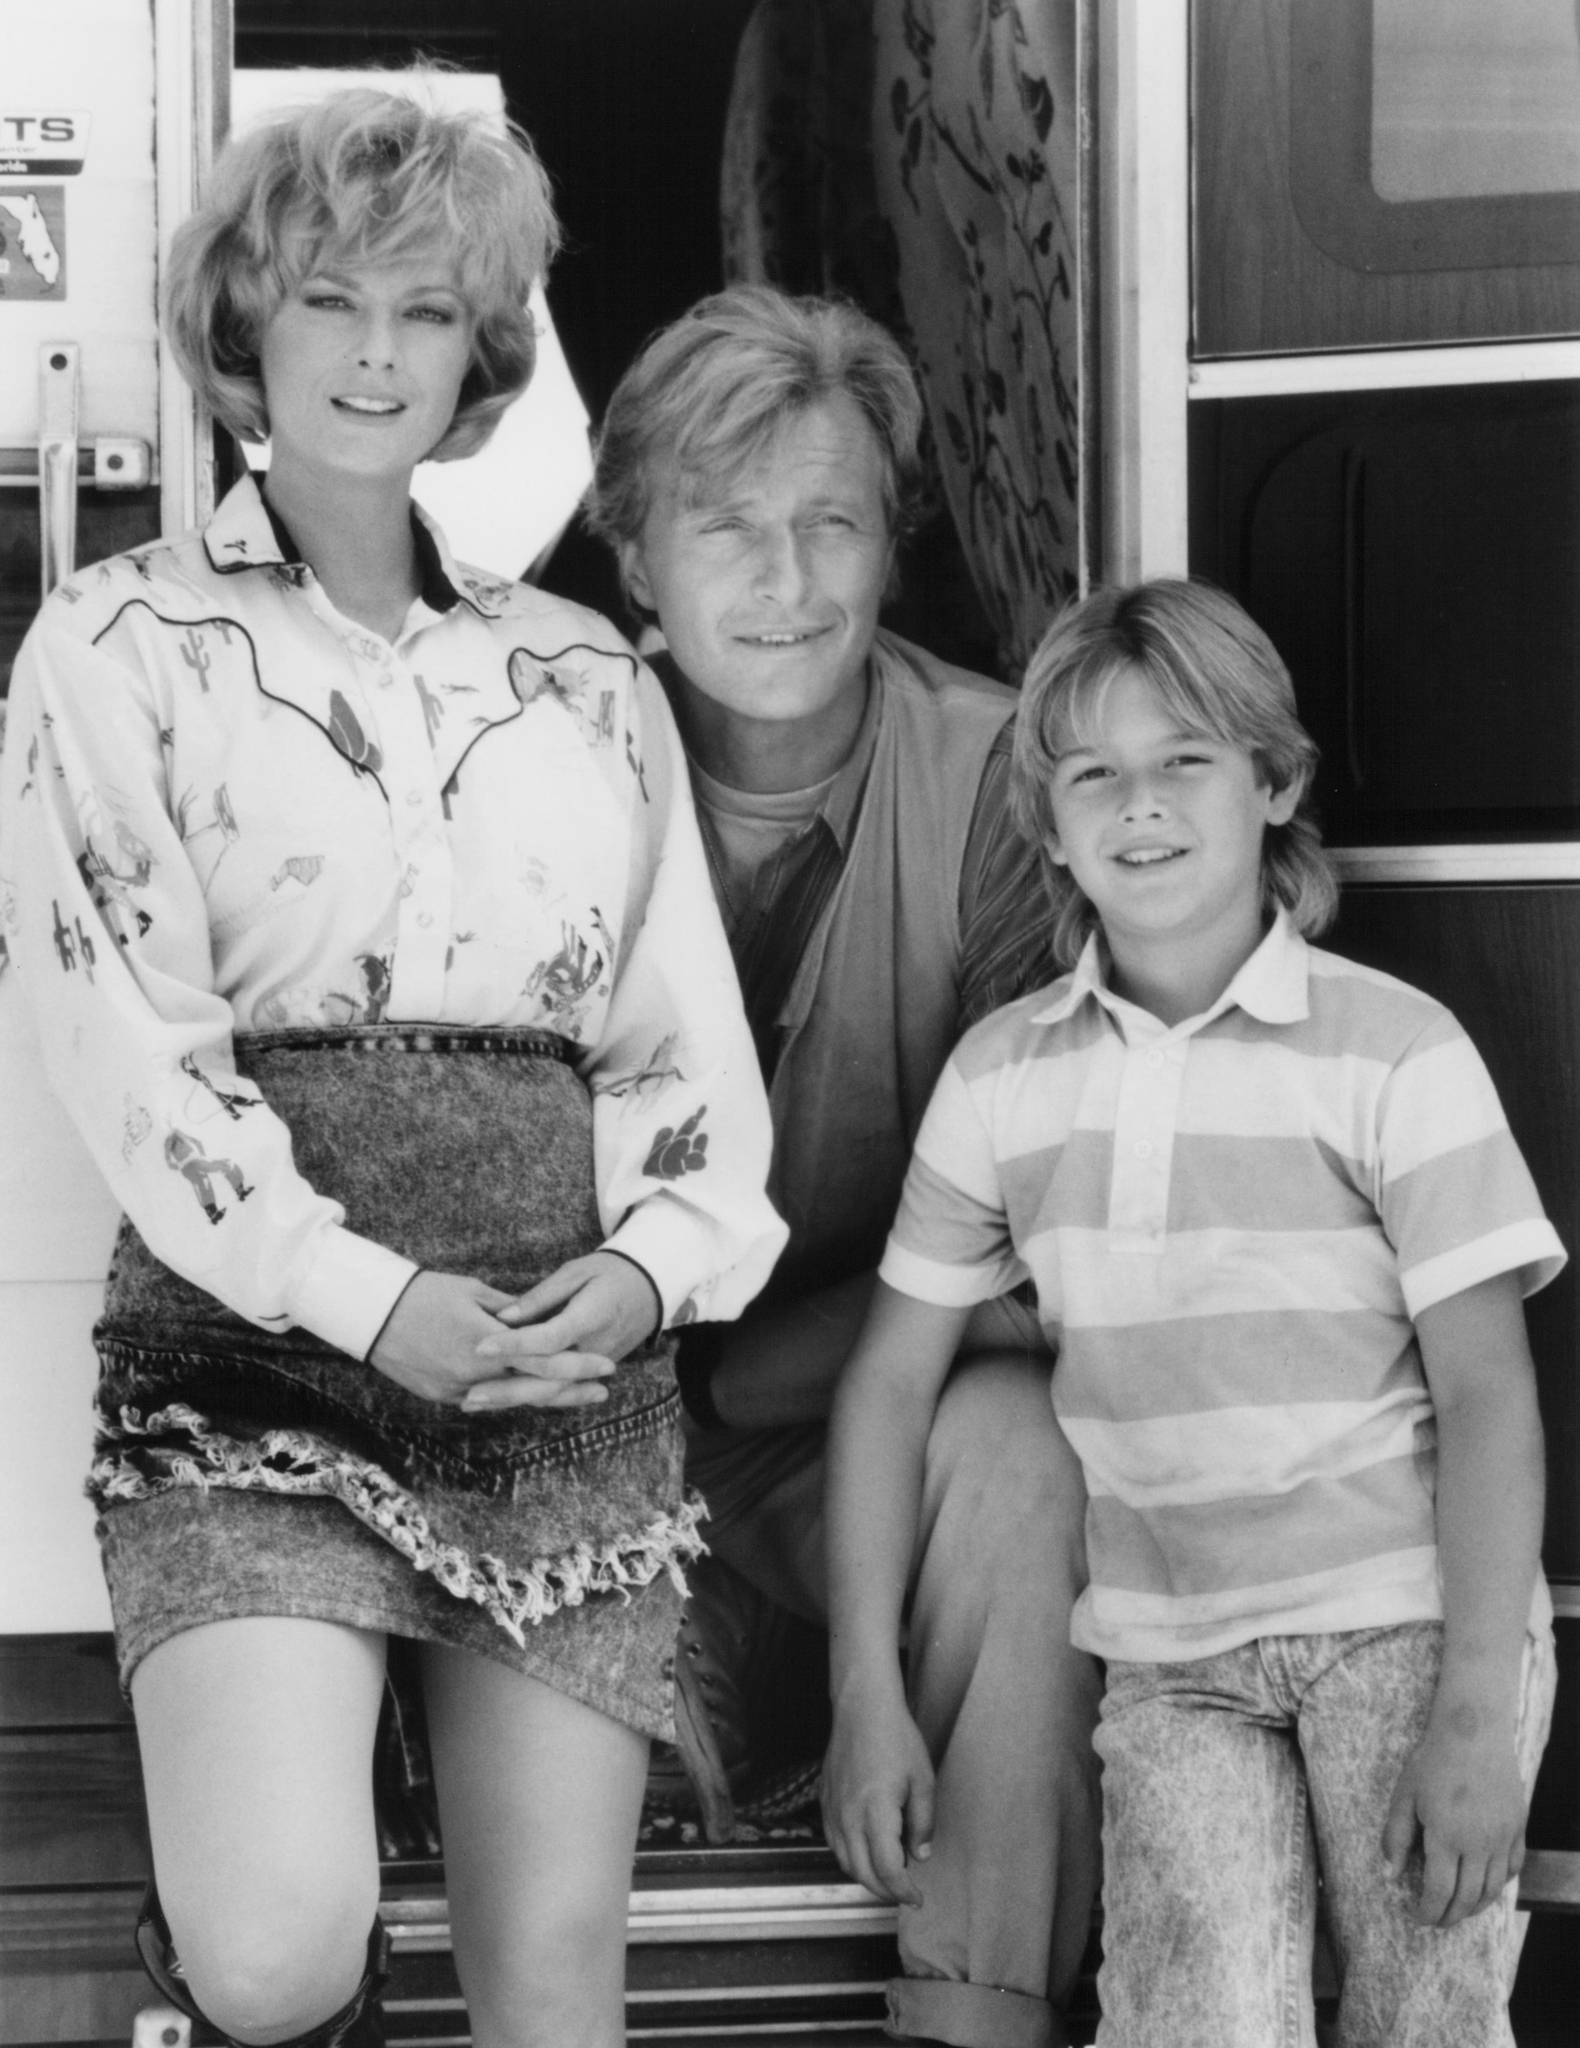 Rutger Hauer, Lisa Blount, and Brandon Call in Blind Fury (1989)